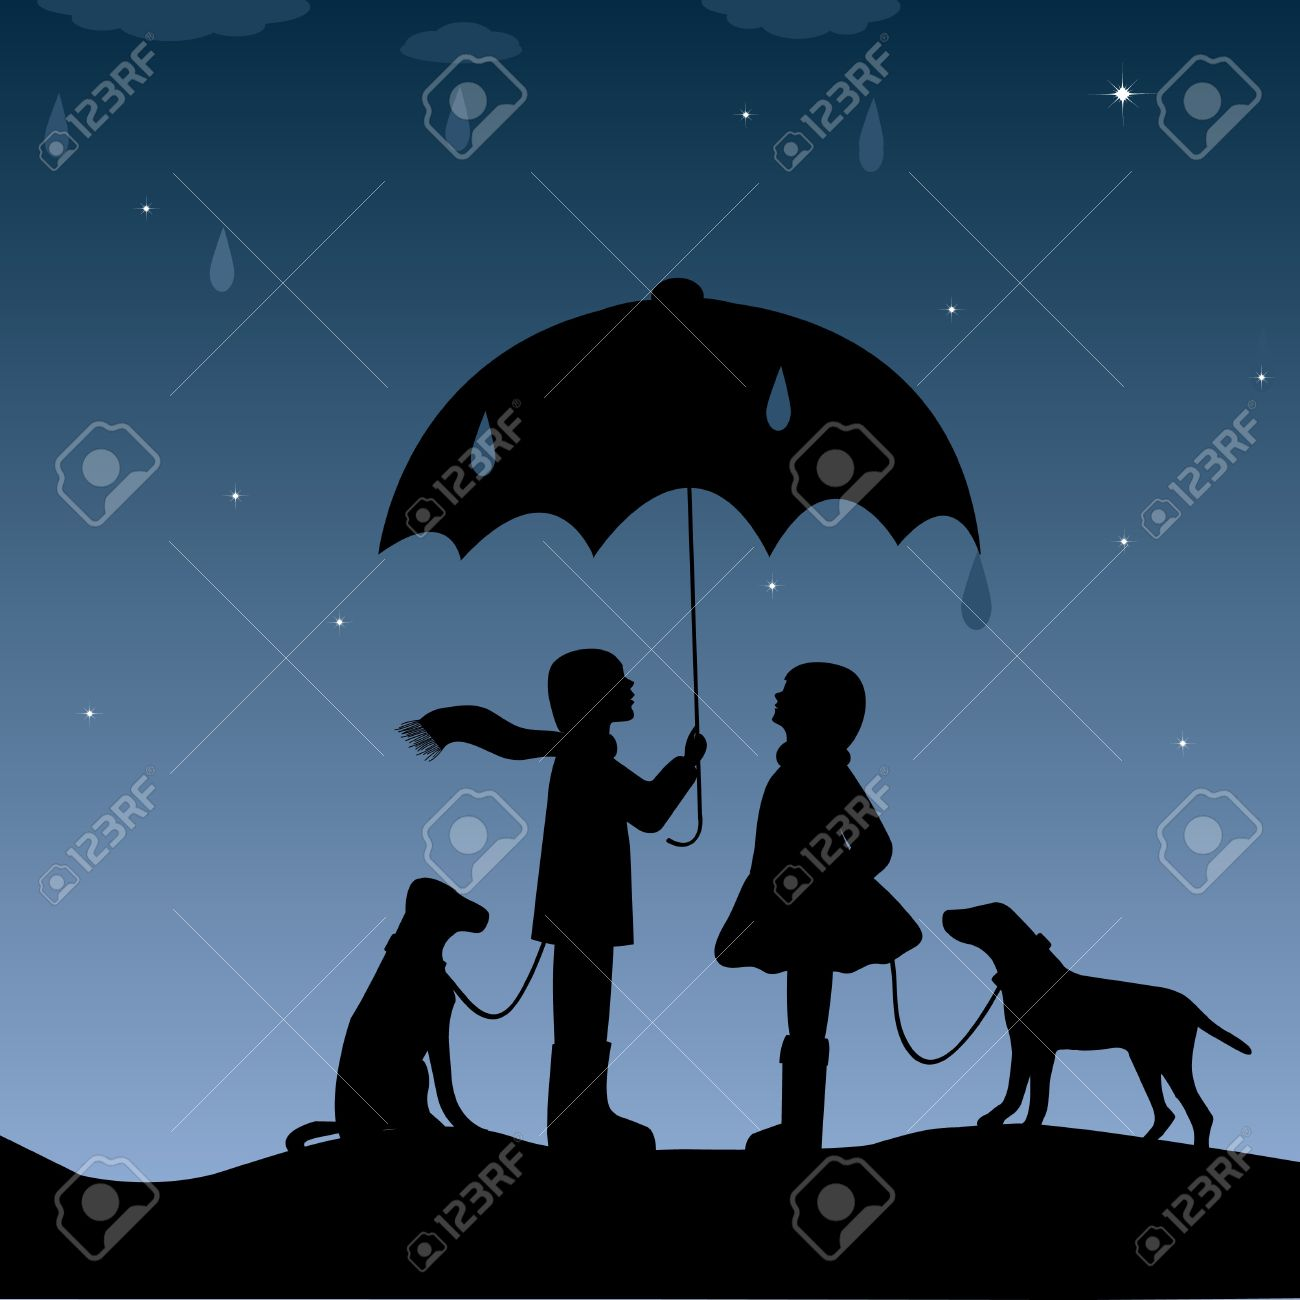 Dog And Girl With Umbrella Silhouette Pictures to Pin on ...